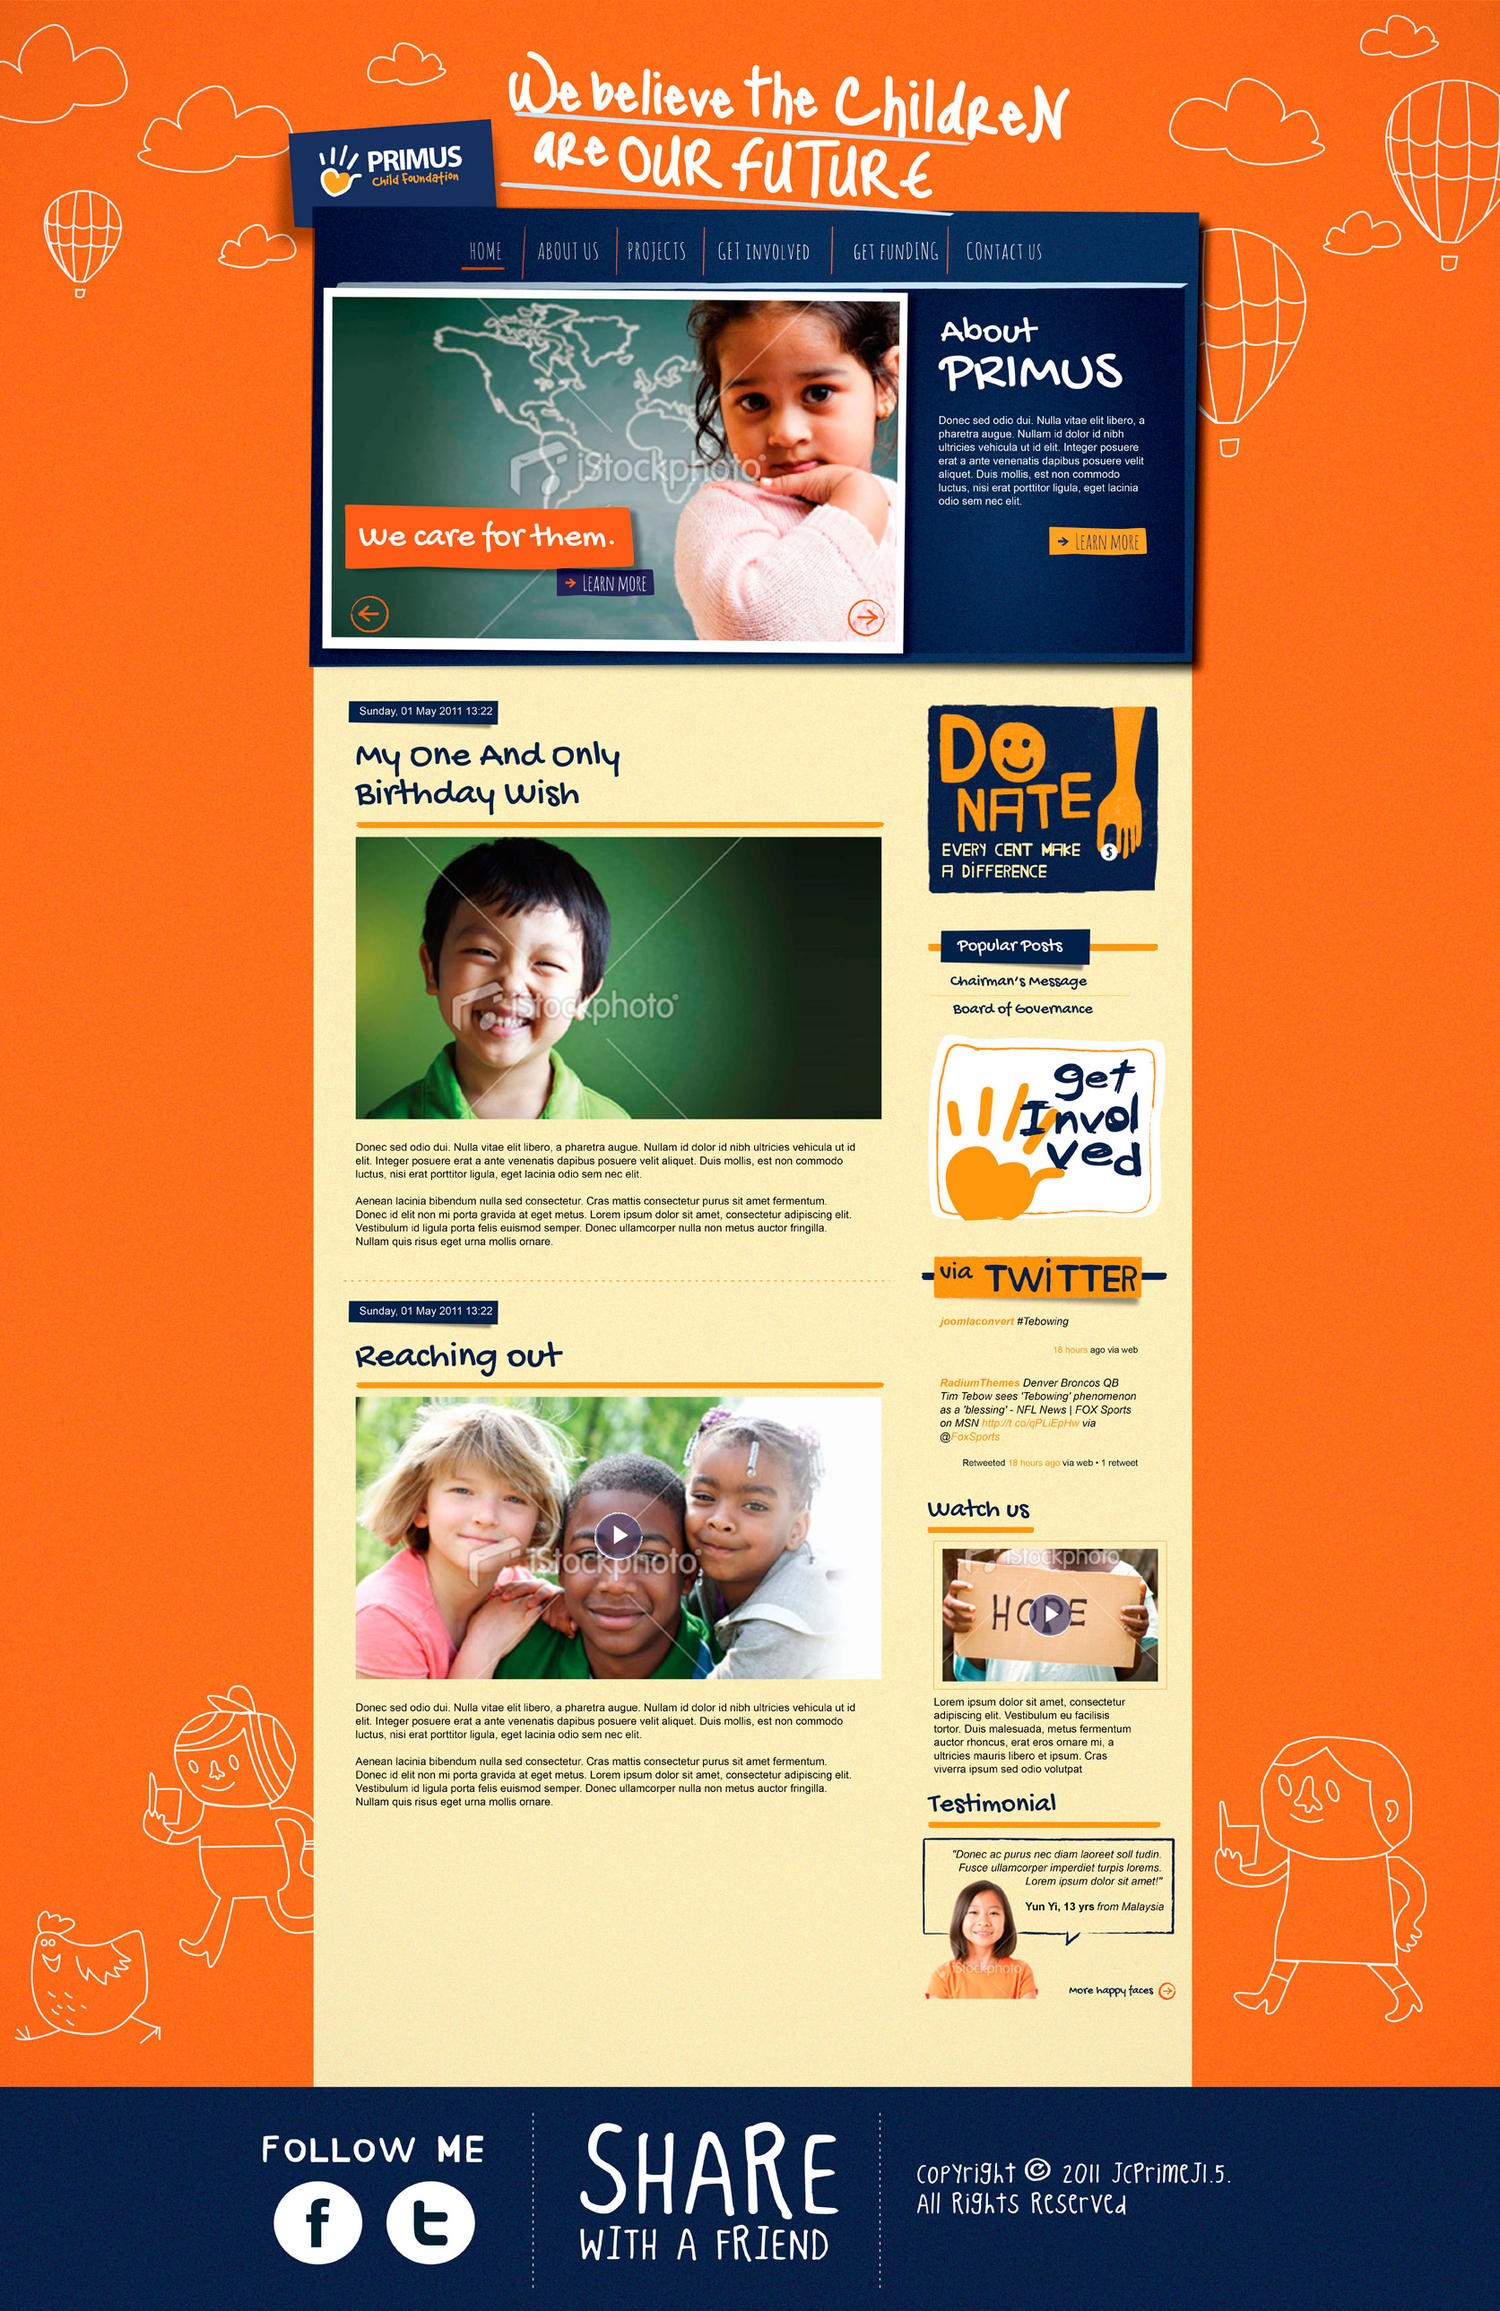 Custom One Page or Homepage Design by alexilalas - 21540